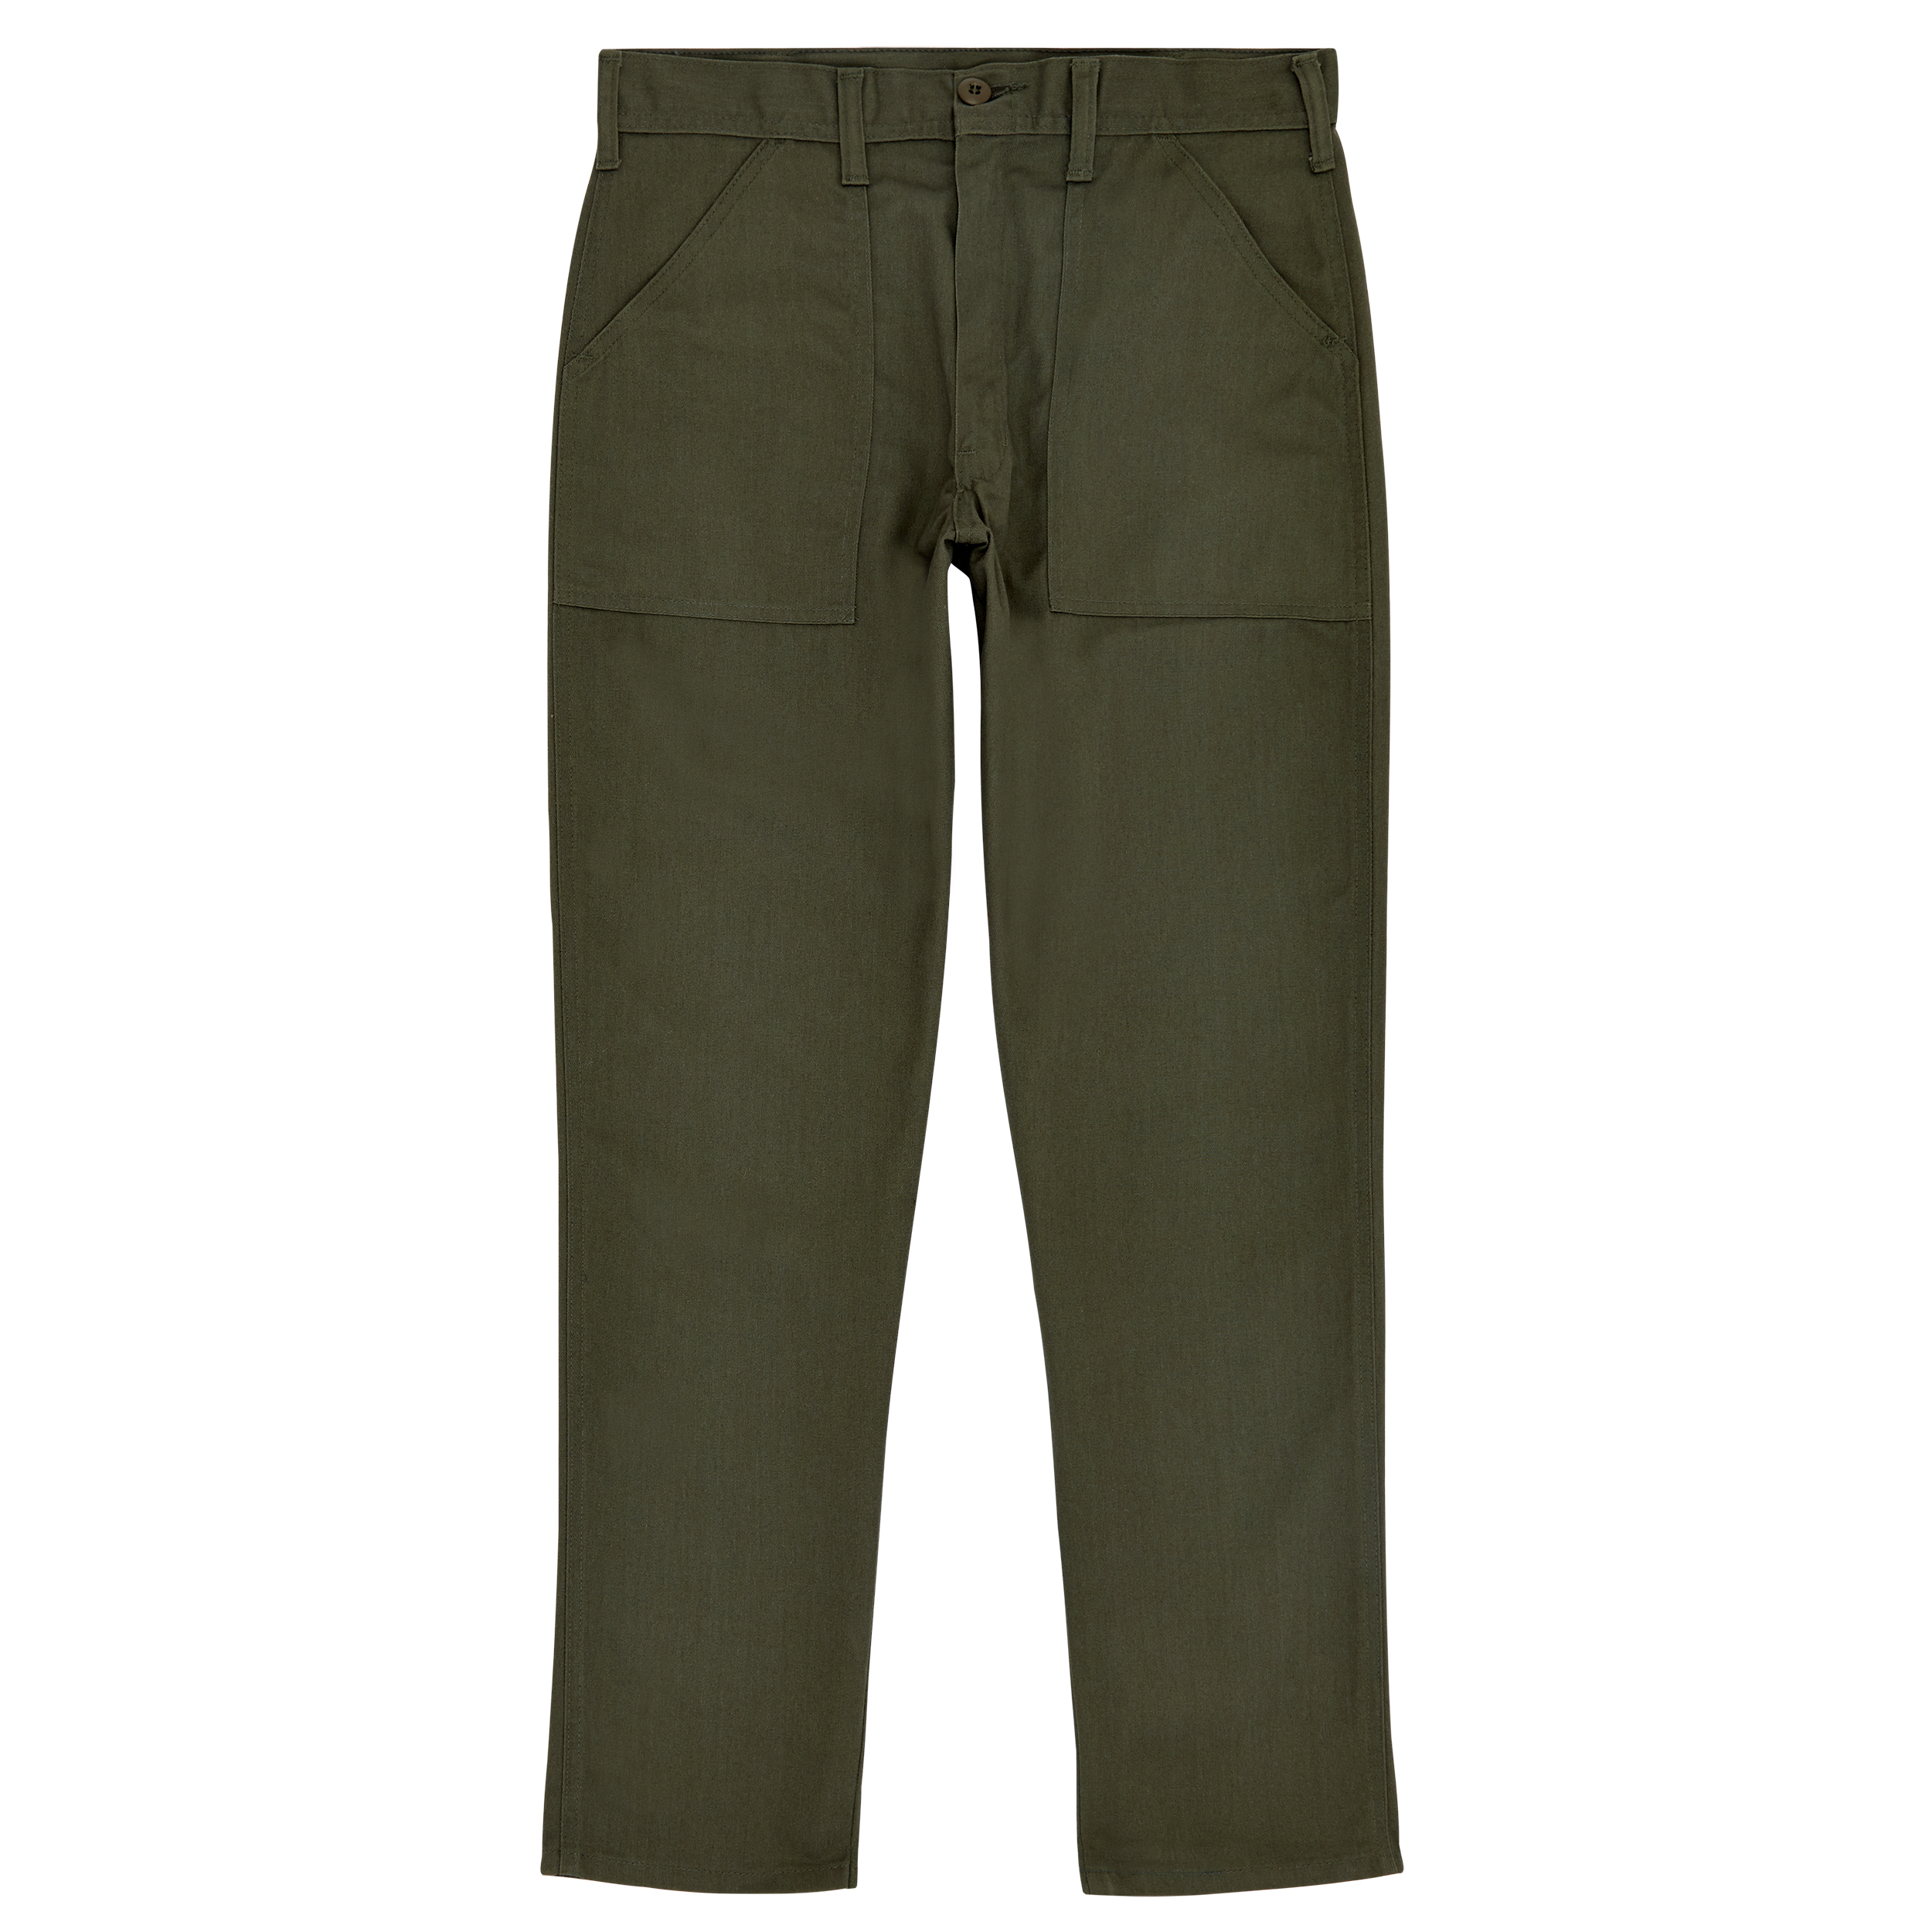 Stan Ray trousers at Urban Outfitters £65 or 85 euros